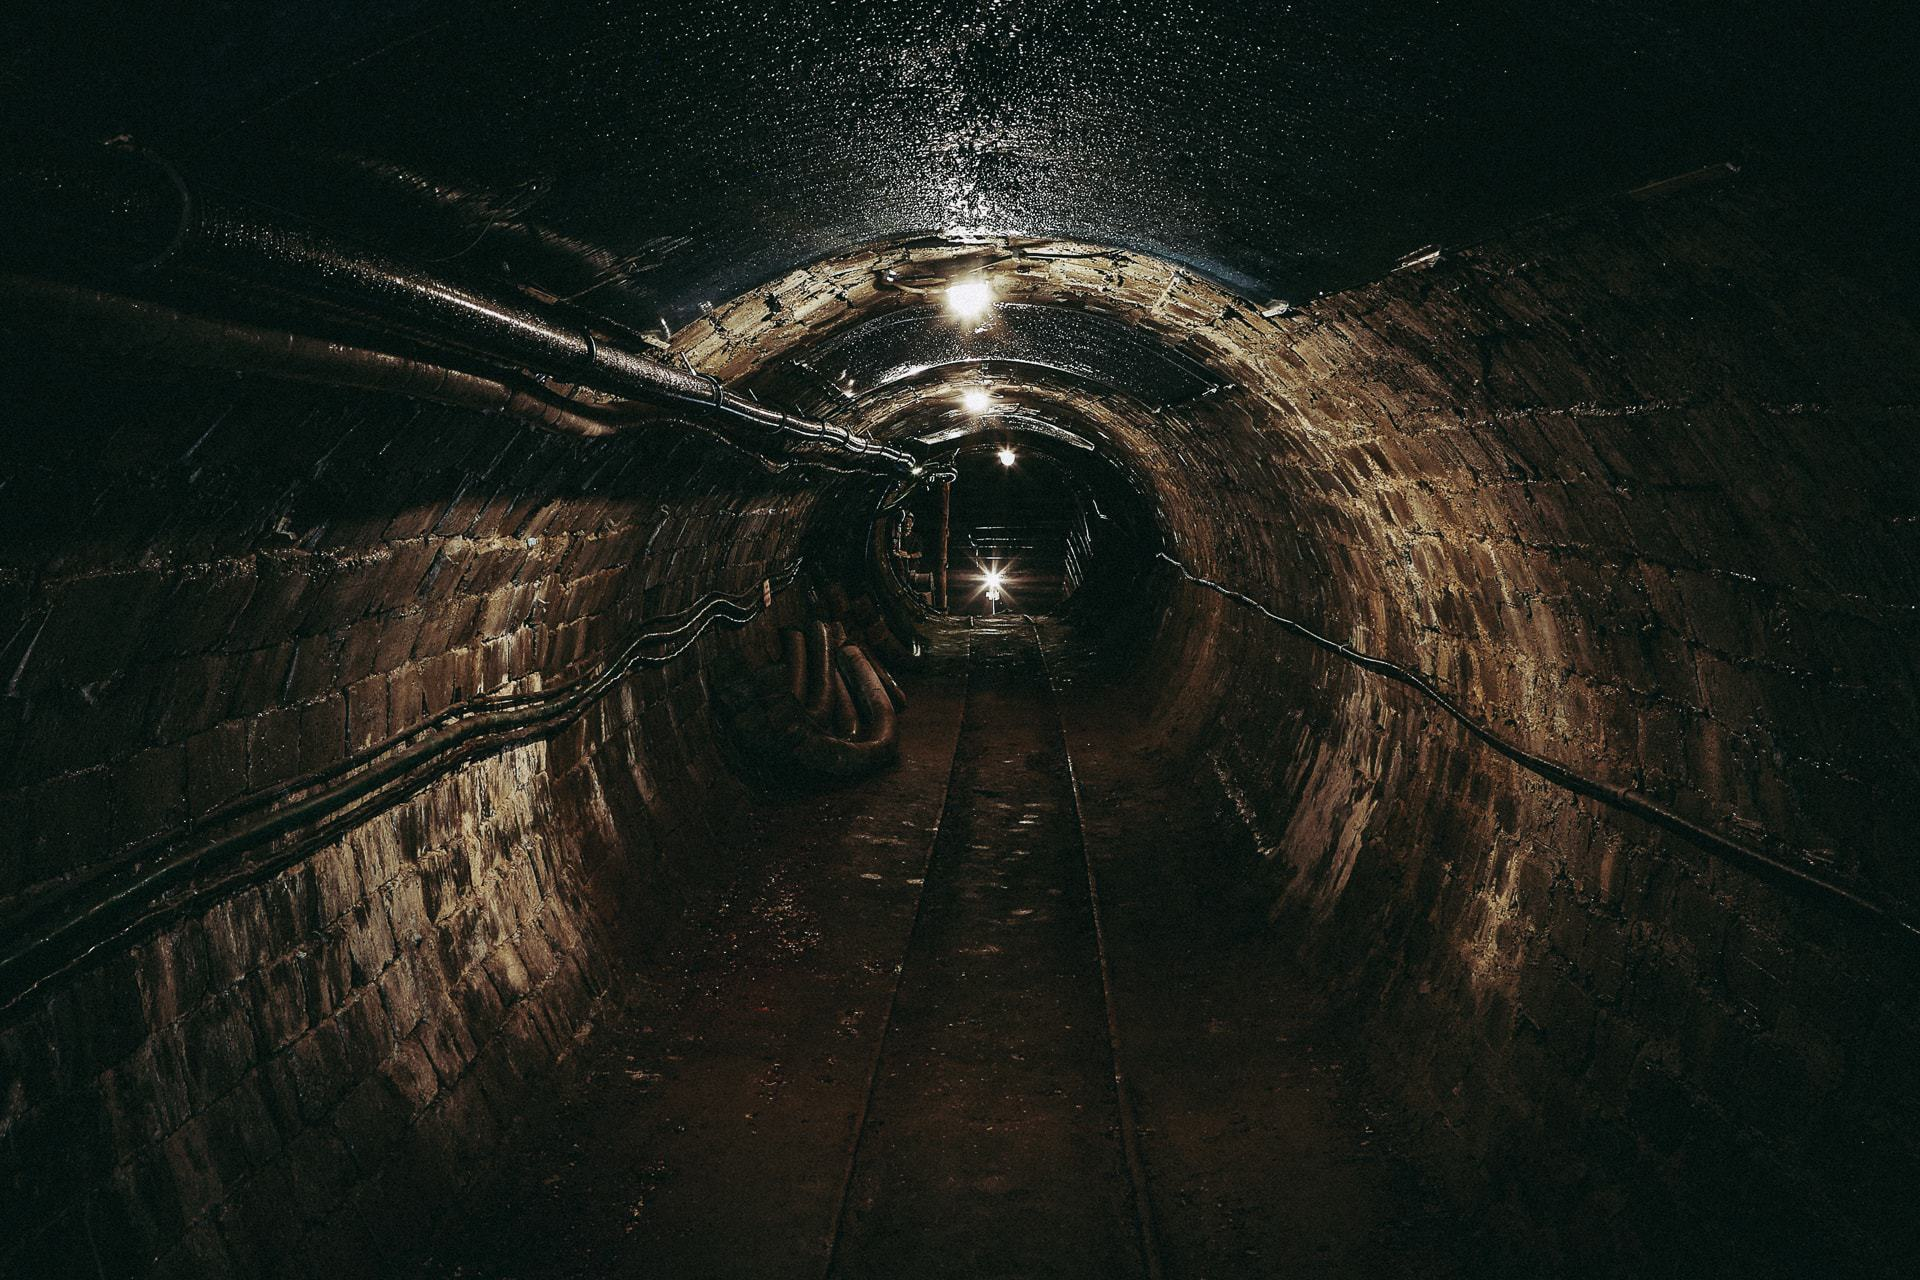 Governor: Please stop trespassing in abandoned mines